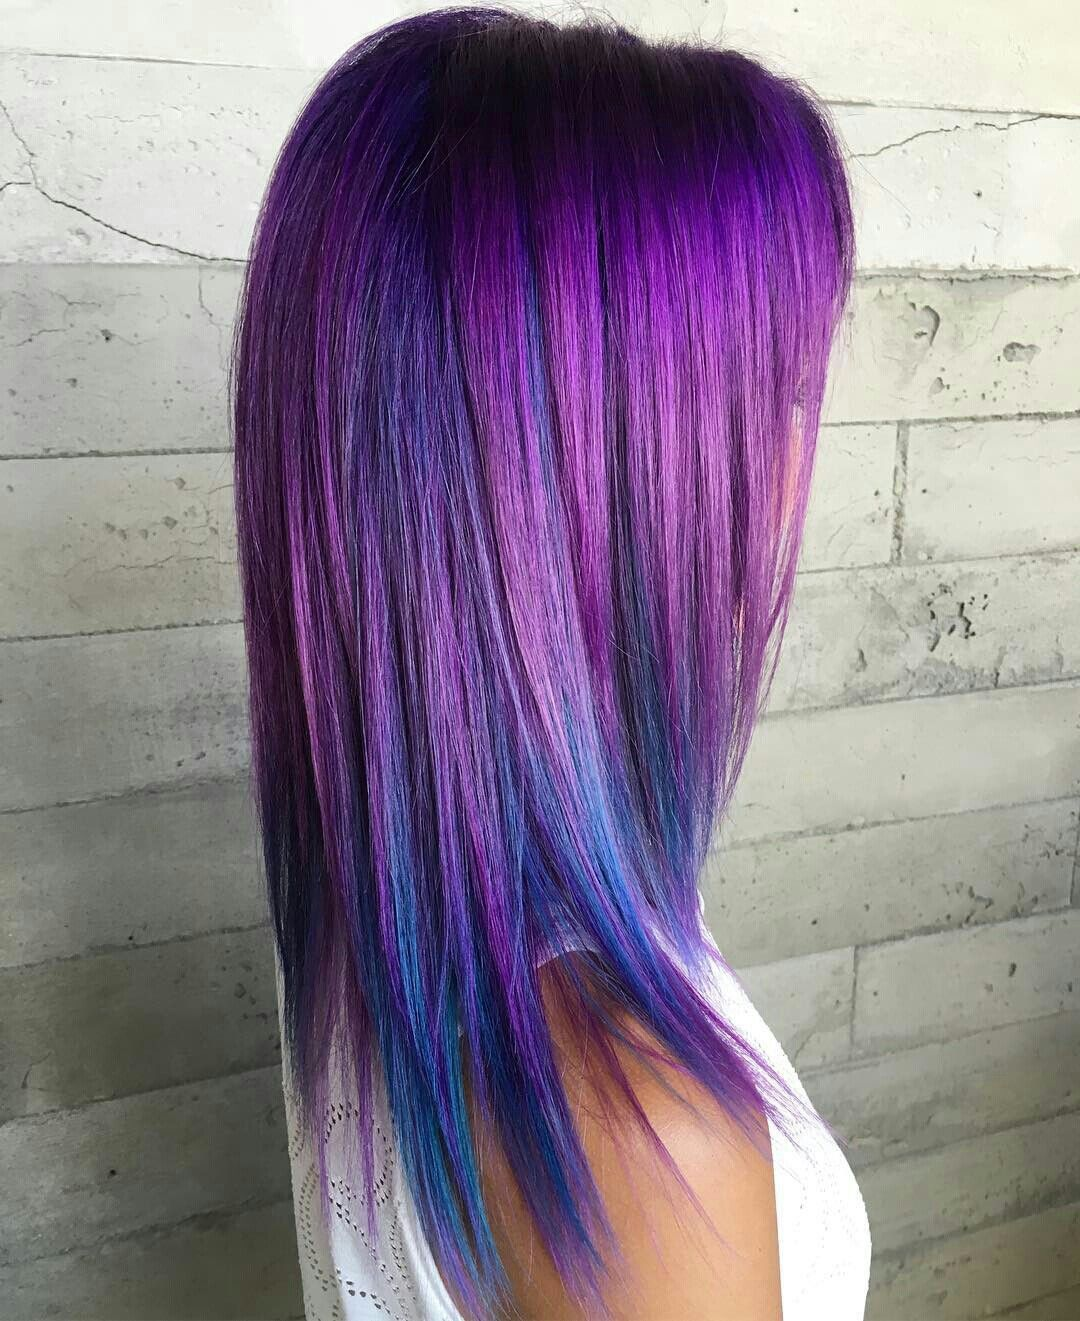 Alexisbutterflyloft hair pinterest awesome hair hair coloring